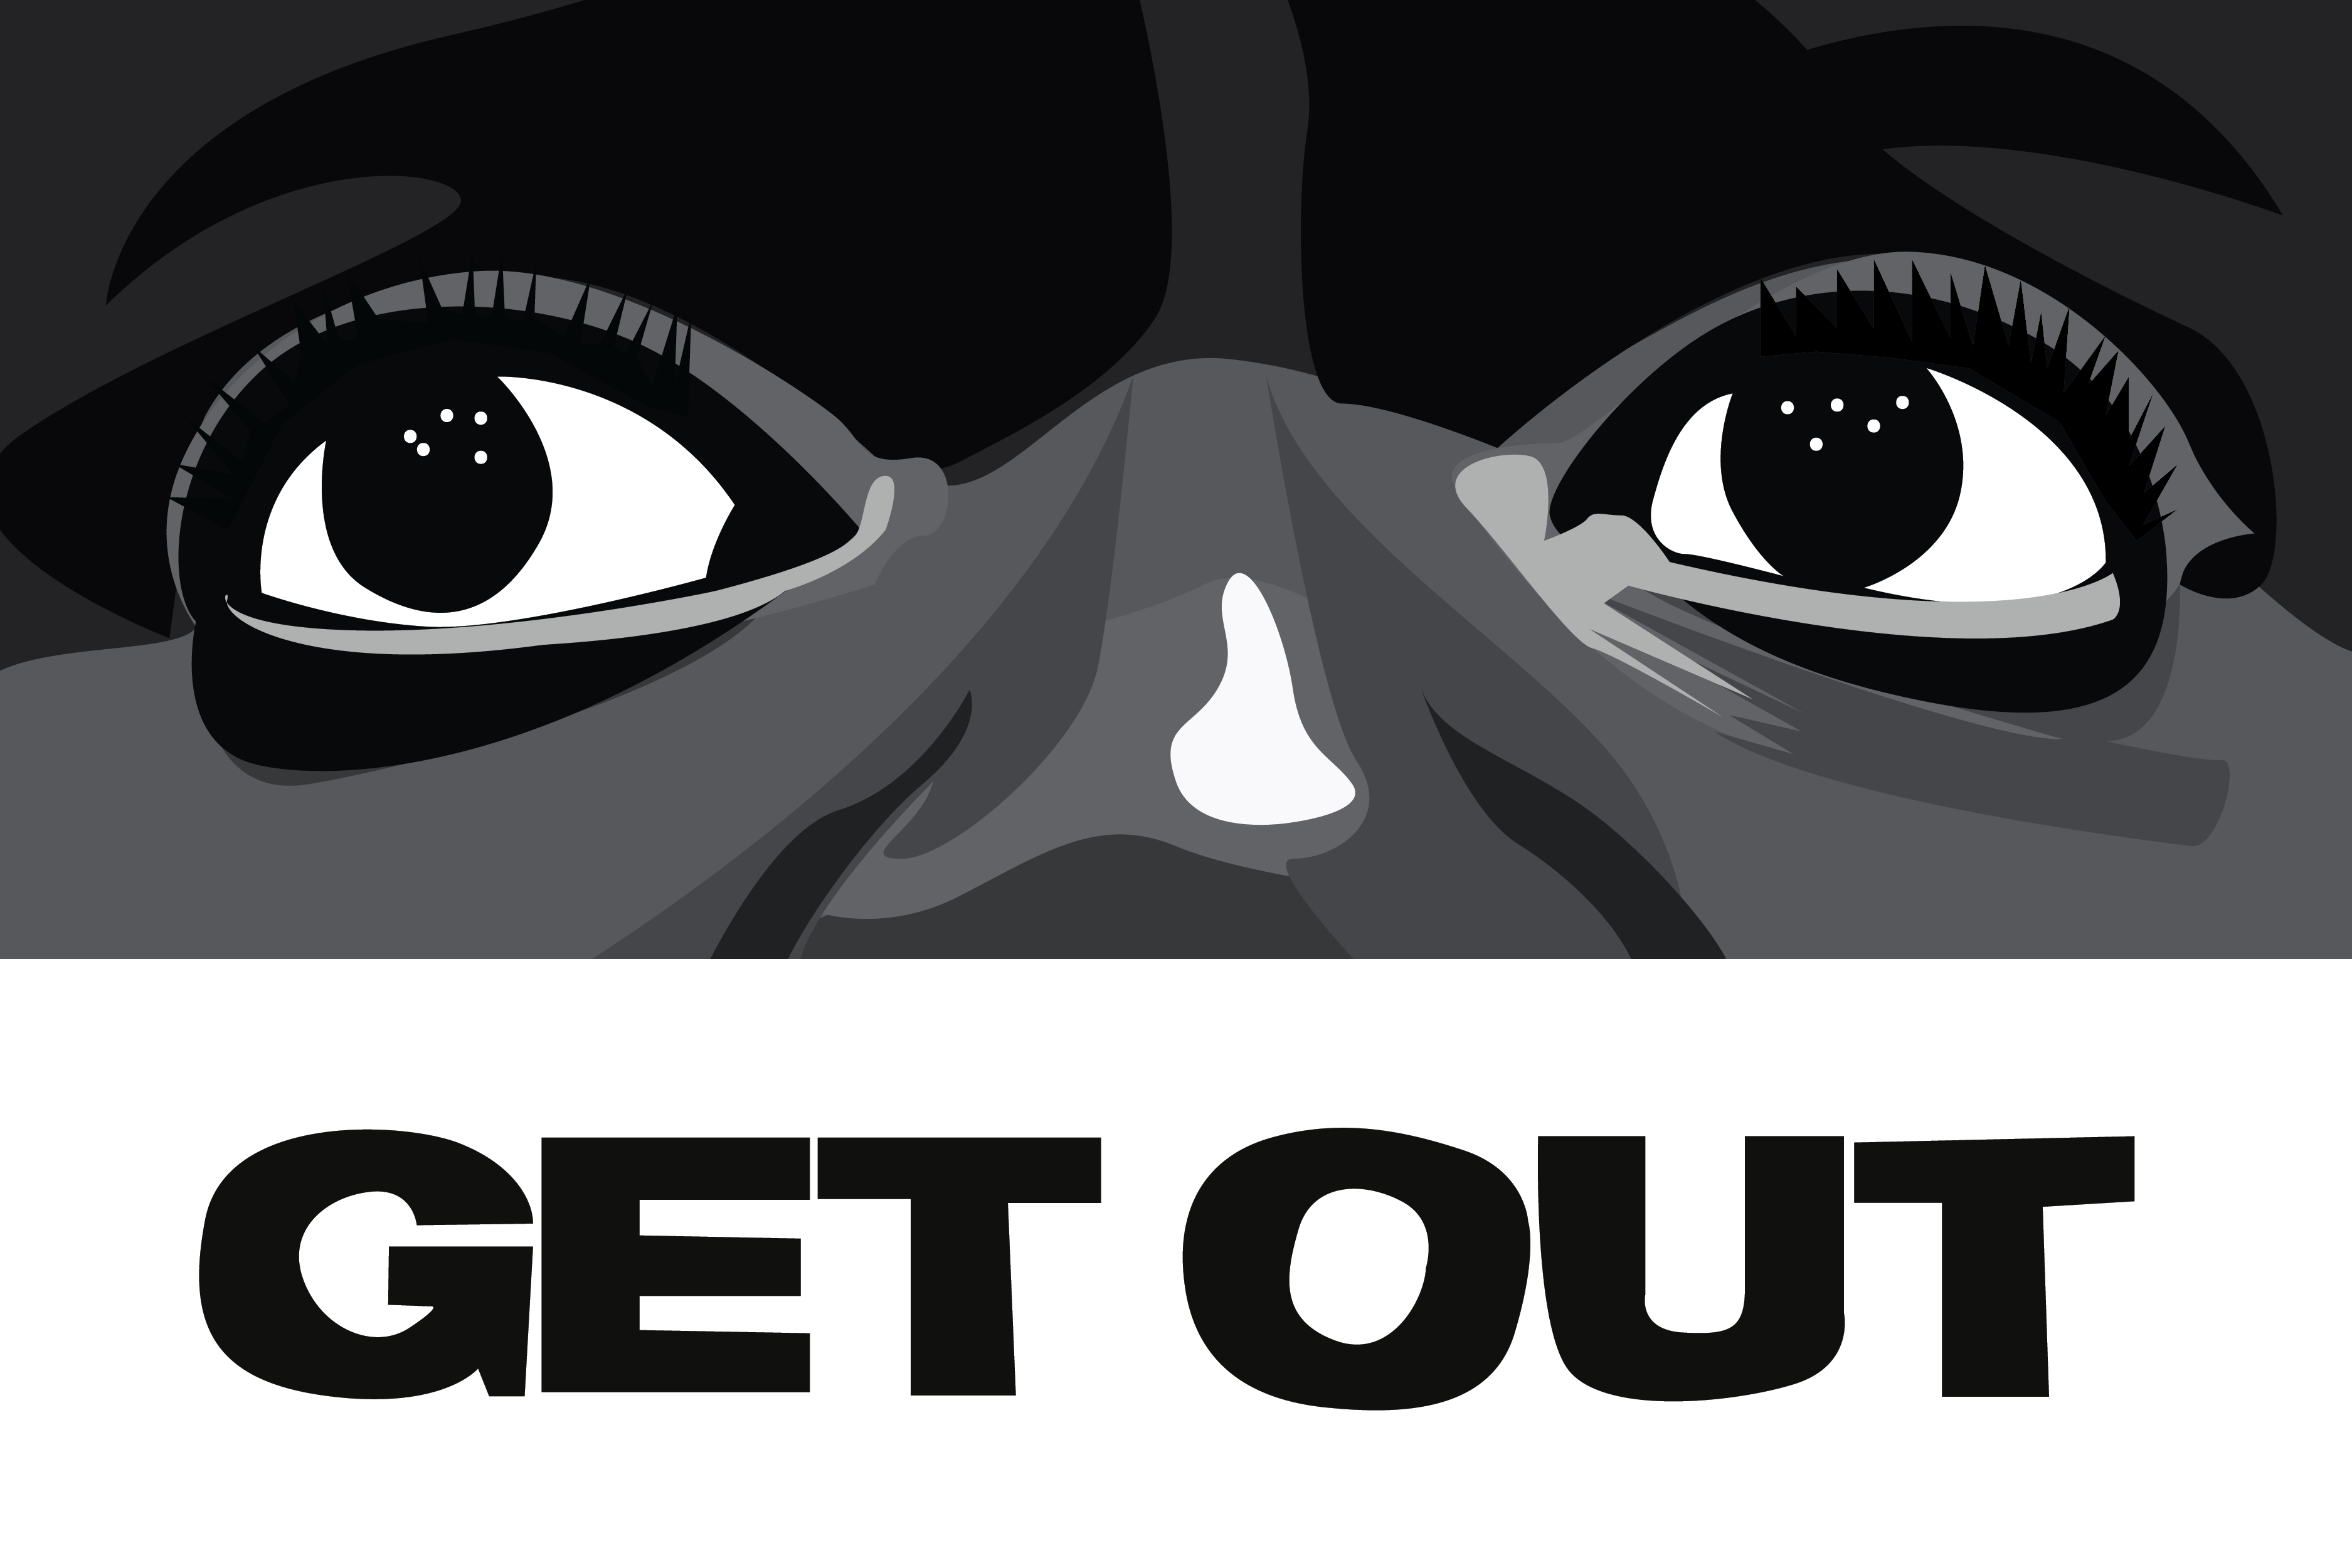 The cultural phenomenon of Get Out.